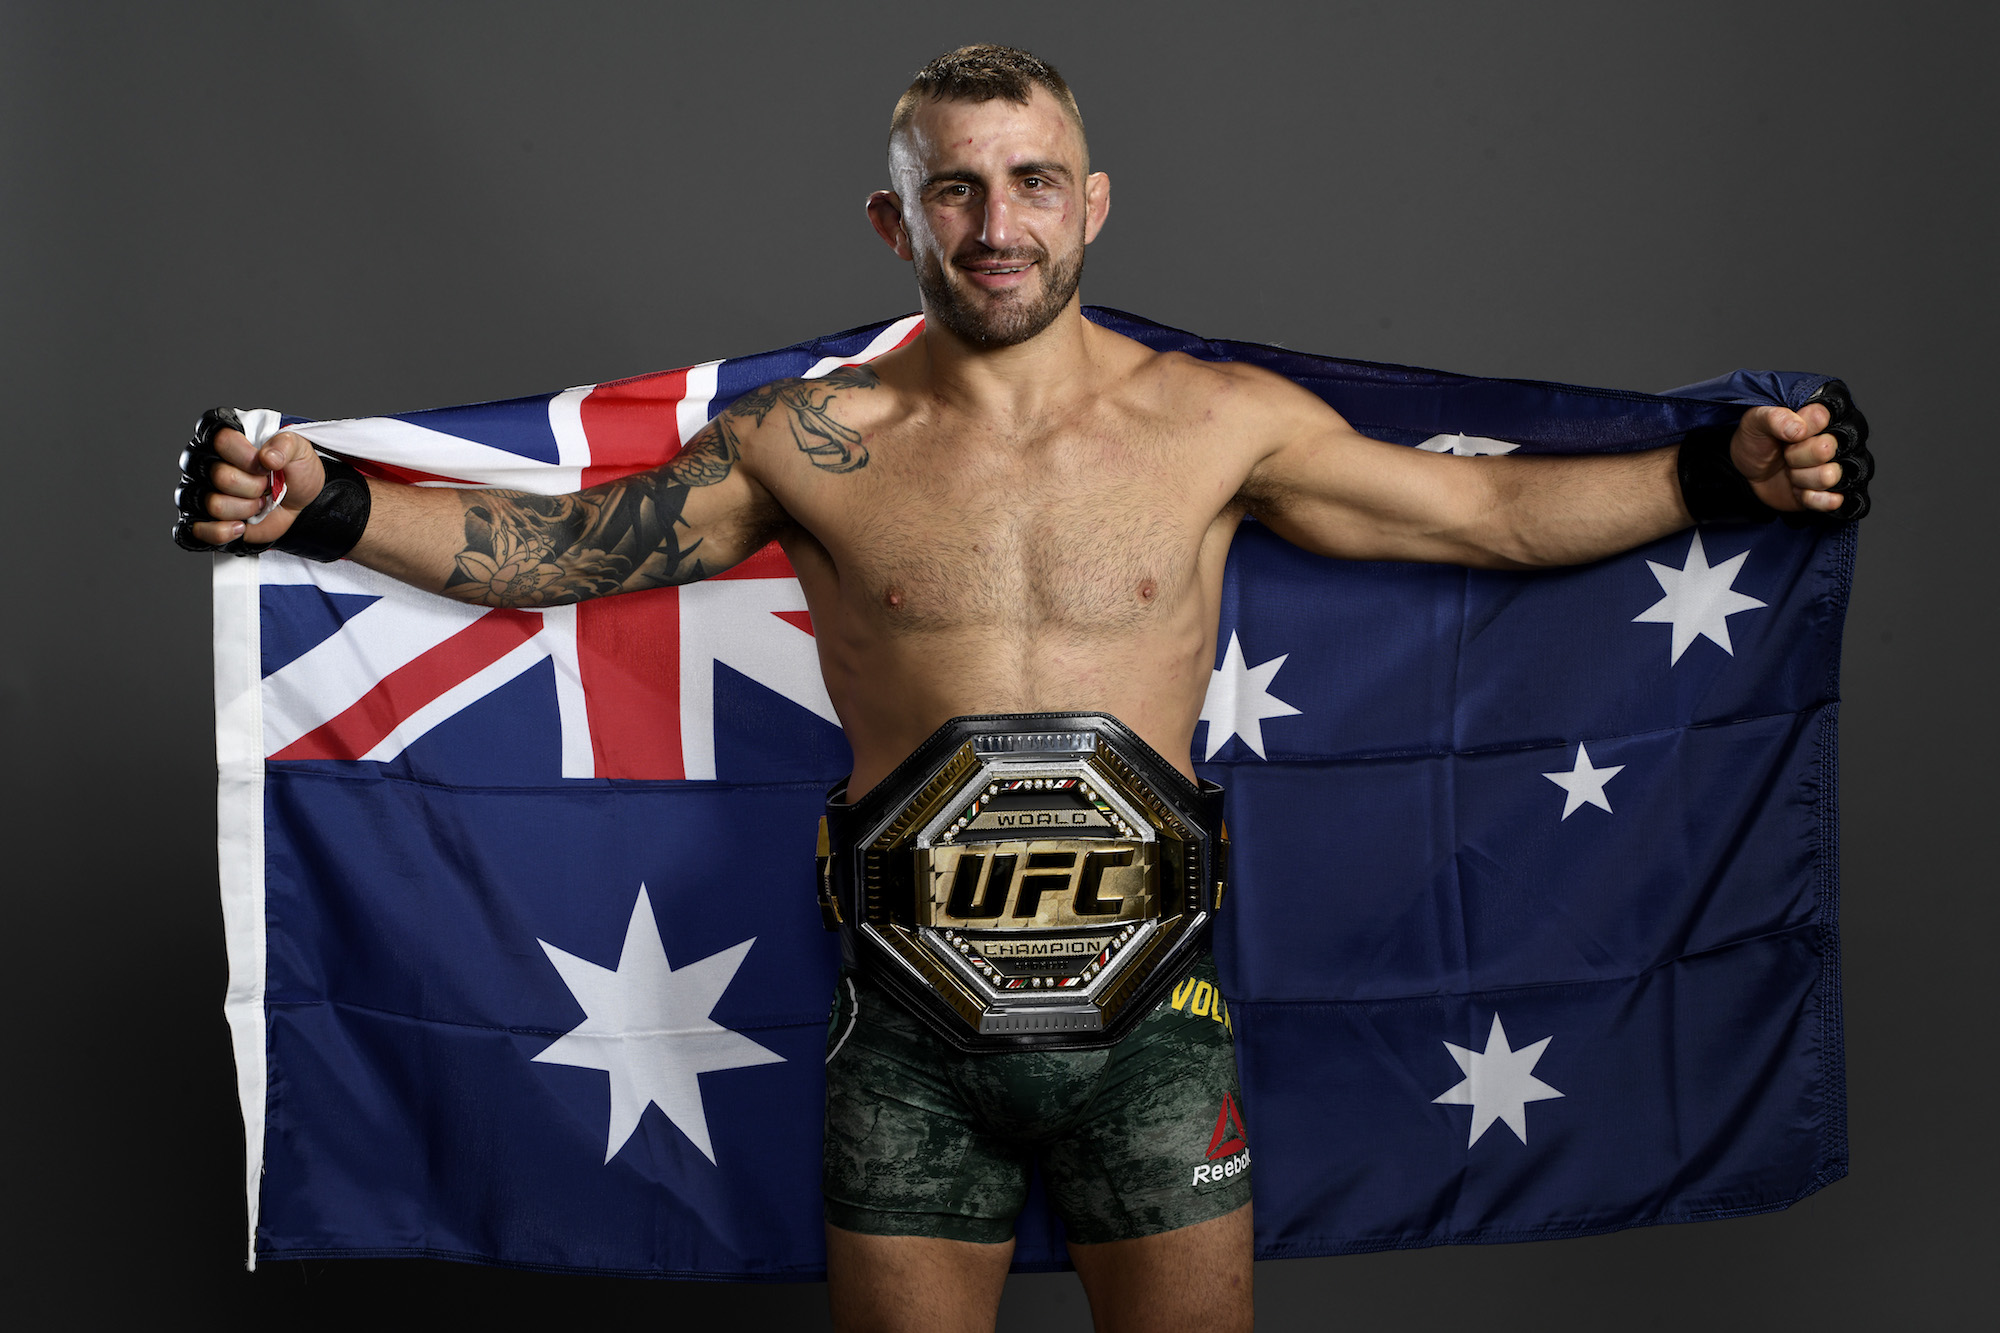 Before starting his UFC career, Alexander Volkanovski played semiprofessional rugby.